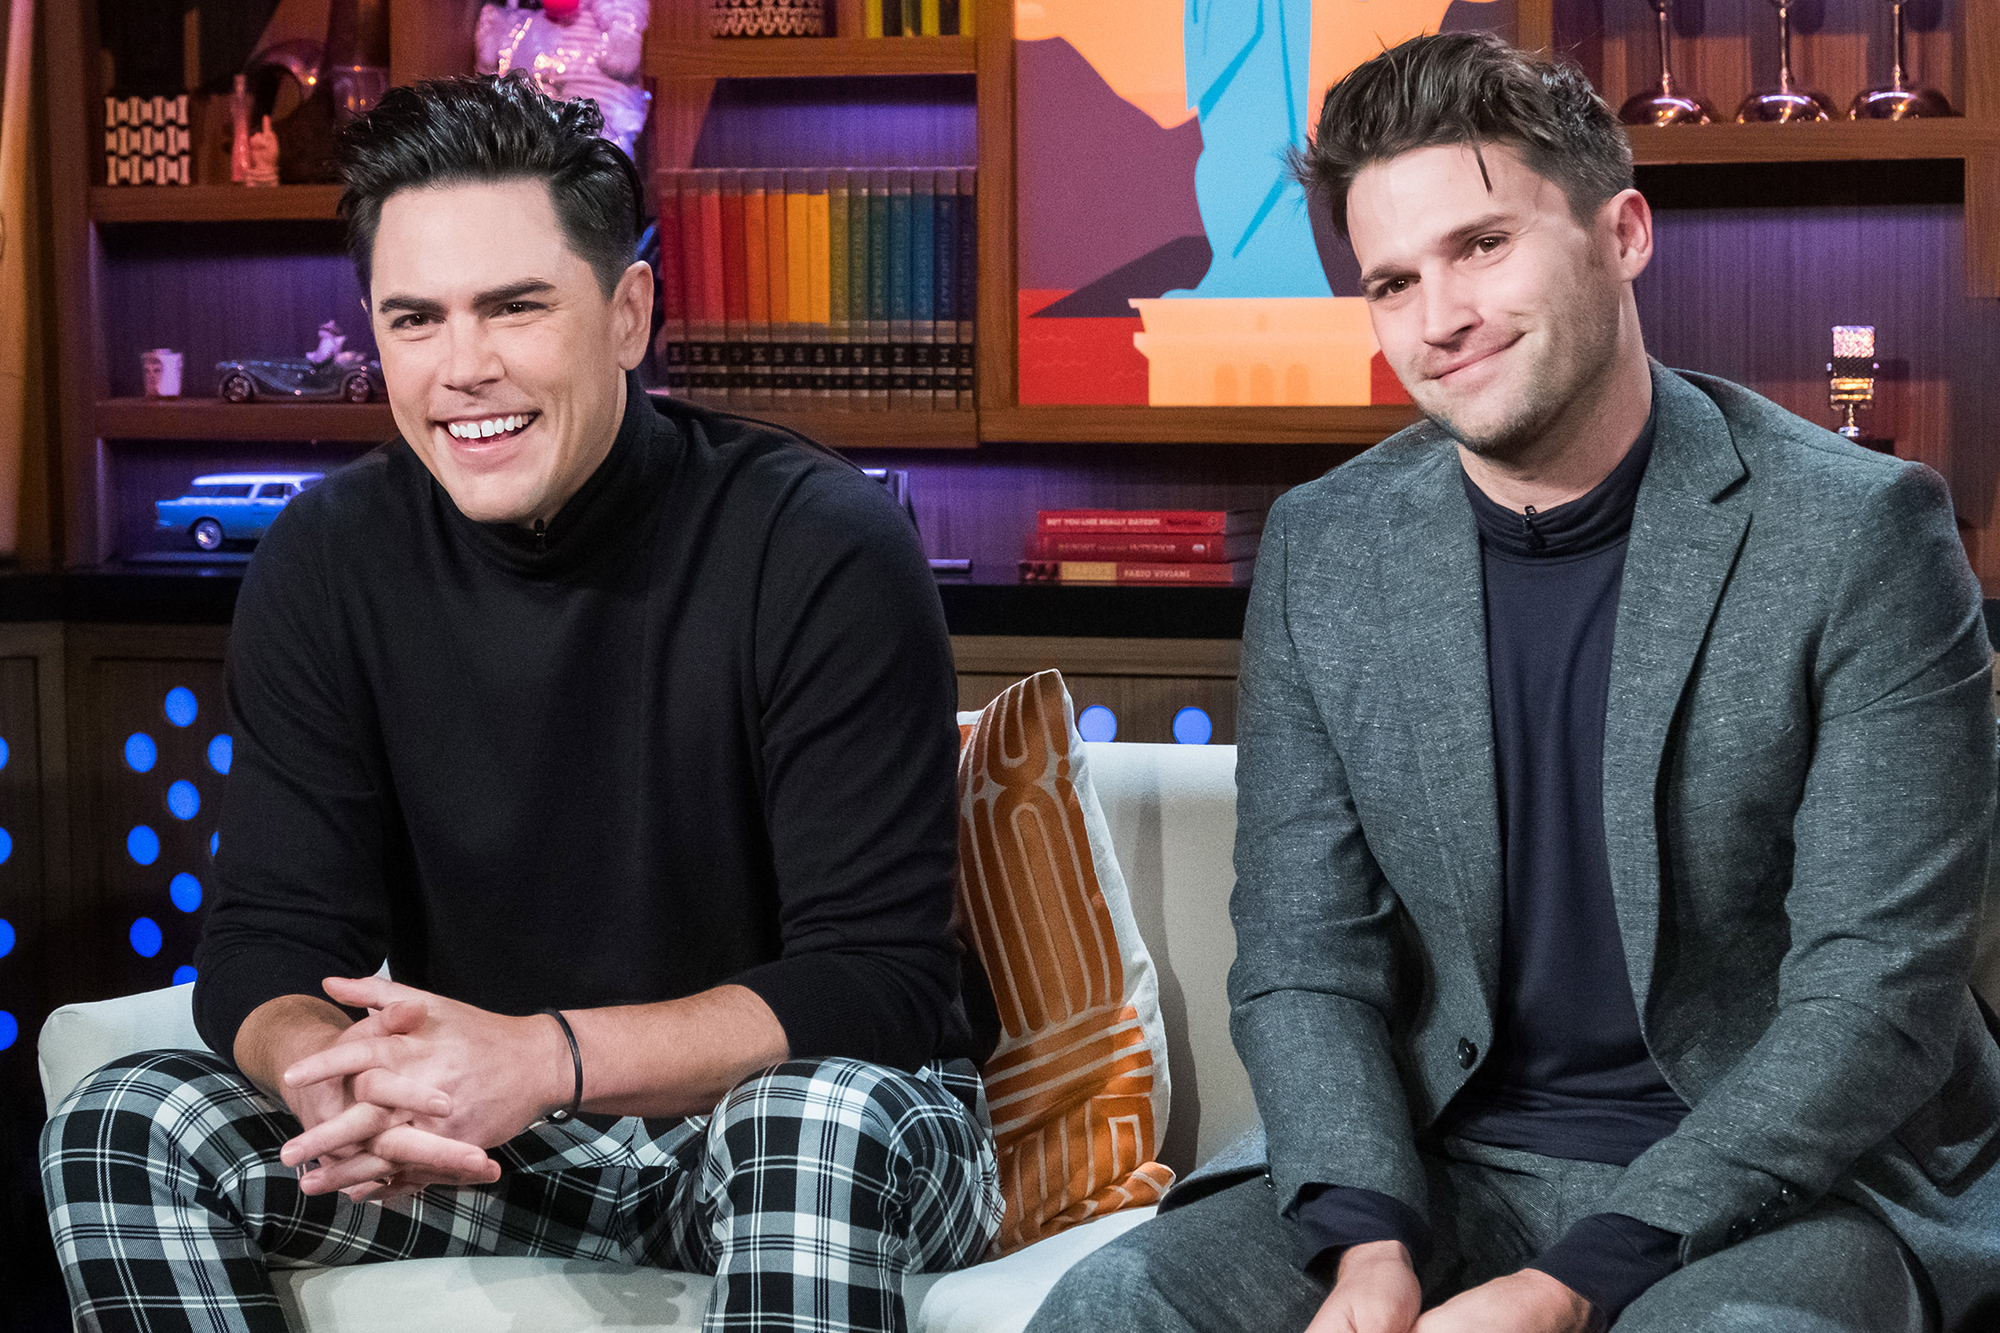 Celebrities Who Own Restaurants: Jay-Z, Ryan Gosling, Armie Hammer and More - The Vanderpump Rules costars opened their first bar, Tom Tom, in West Hollywood in 2018, with some help from bosses Ken Todd and Lisa Vanderpump . The establishment has quickly become a celeb-favorite, attracting guests such as Chrissy Teigen and John Legend , as well as Miley Cyrus .